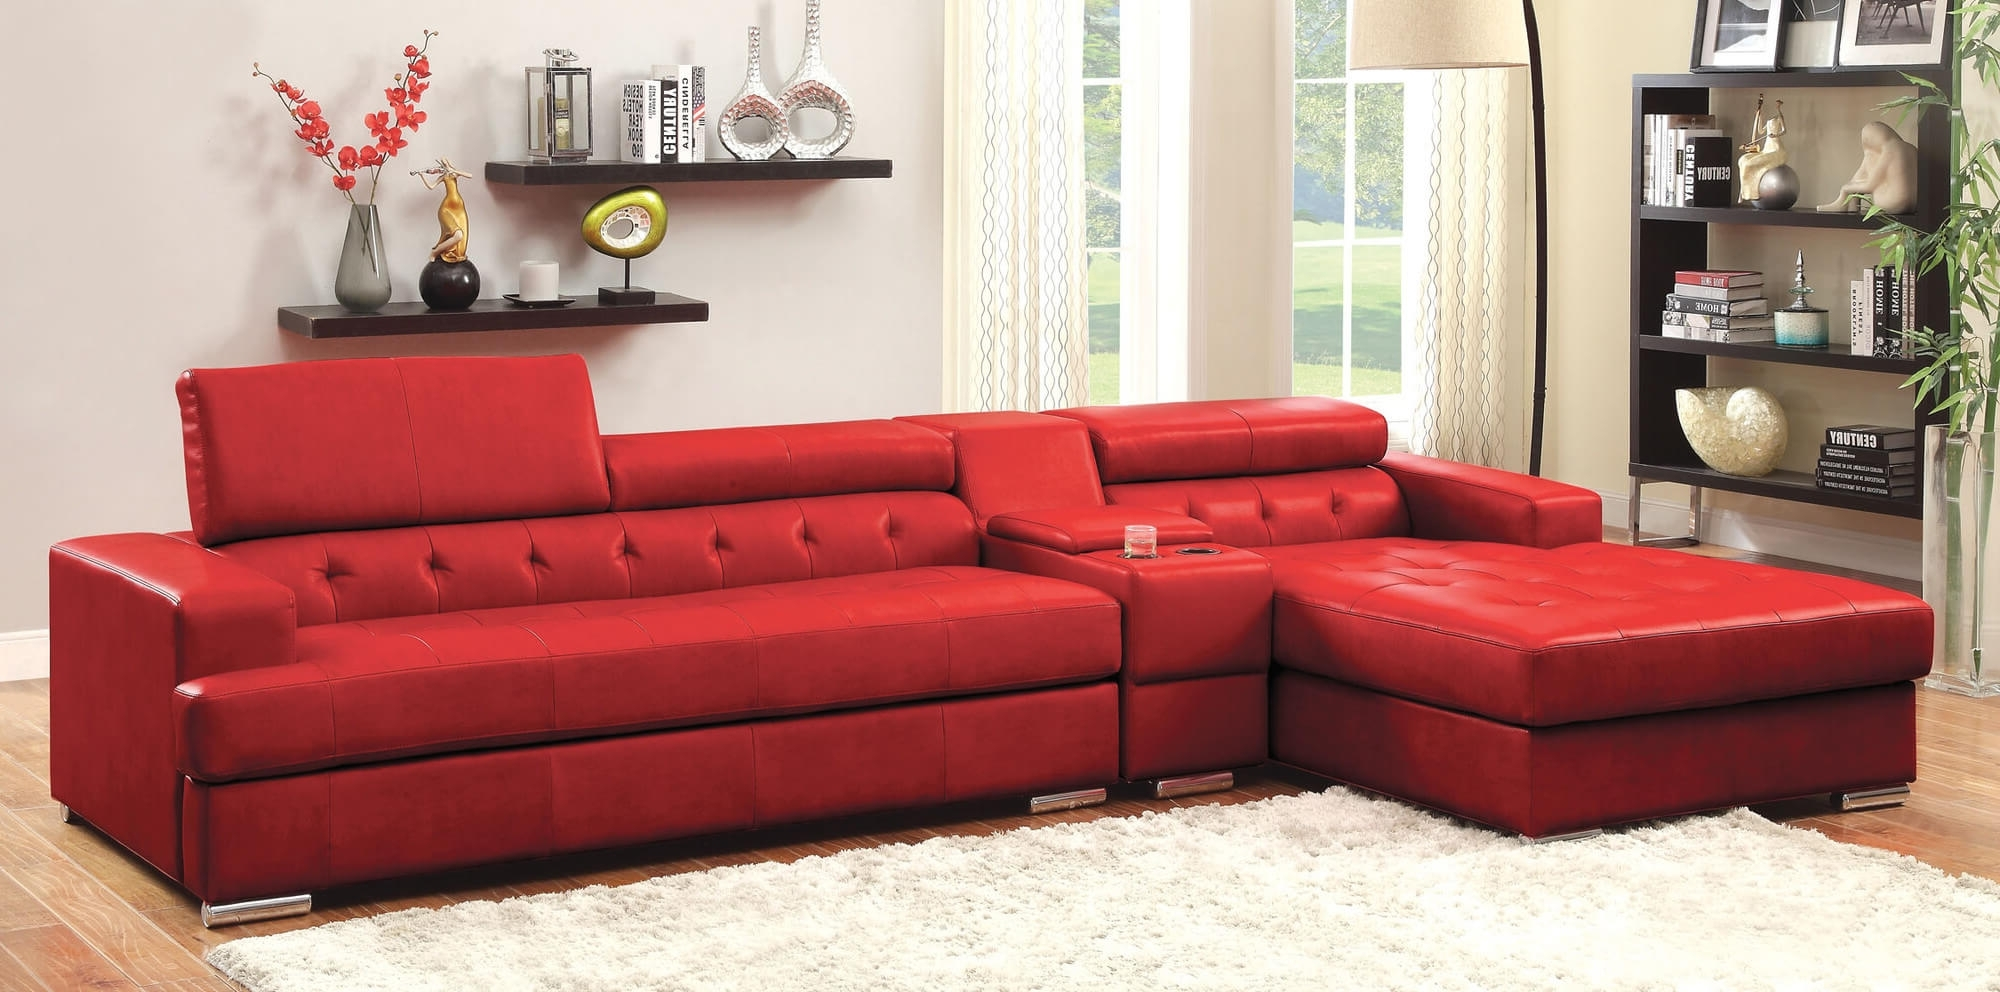 Sectional Modern Sofa Interior White Button Leather Furniture In Newest Vancouver Bc Canada Sectional Sofas (View 8 of 15)